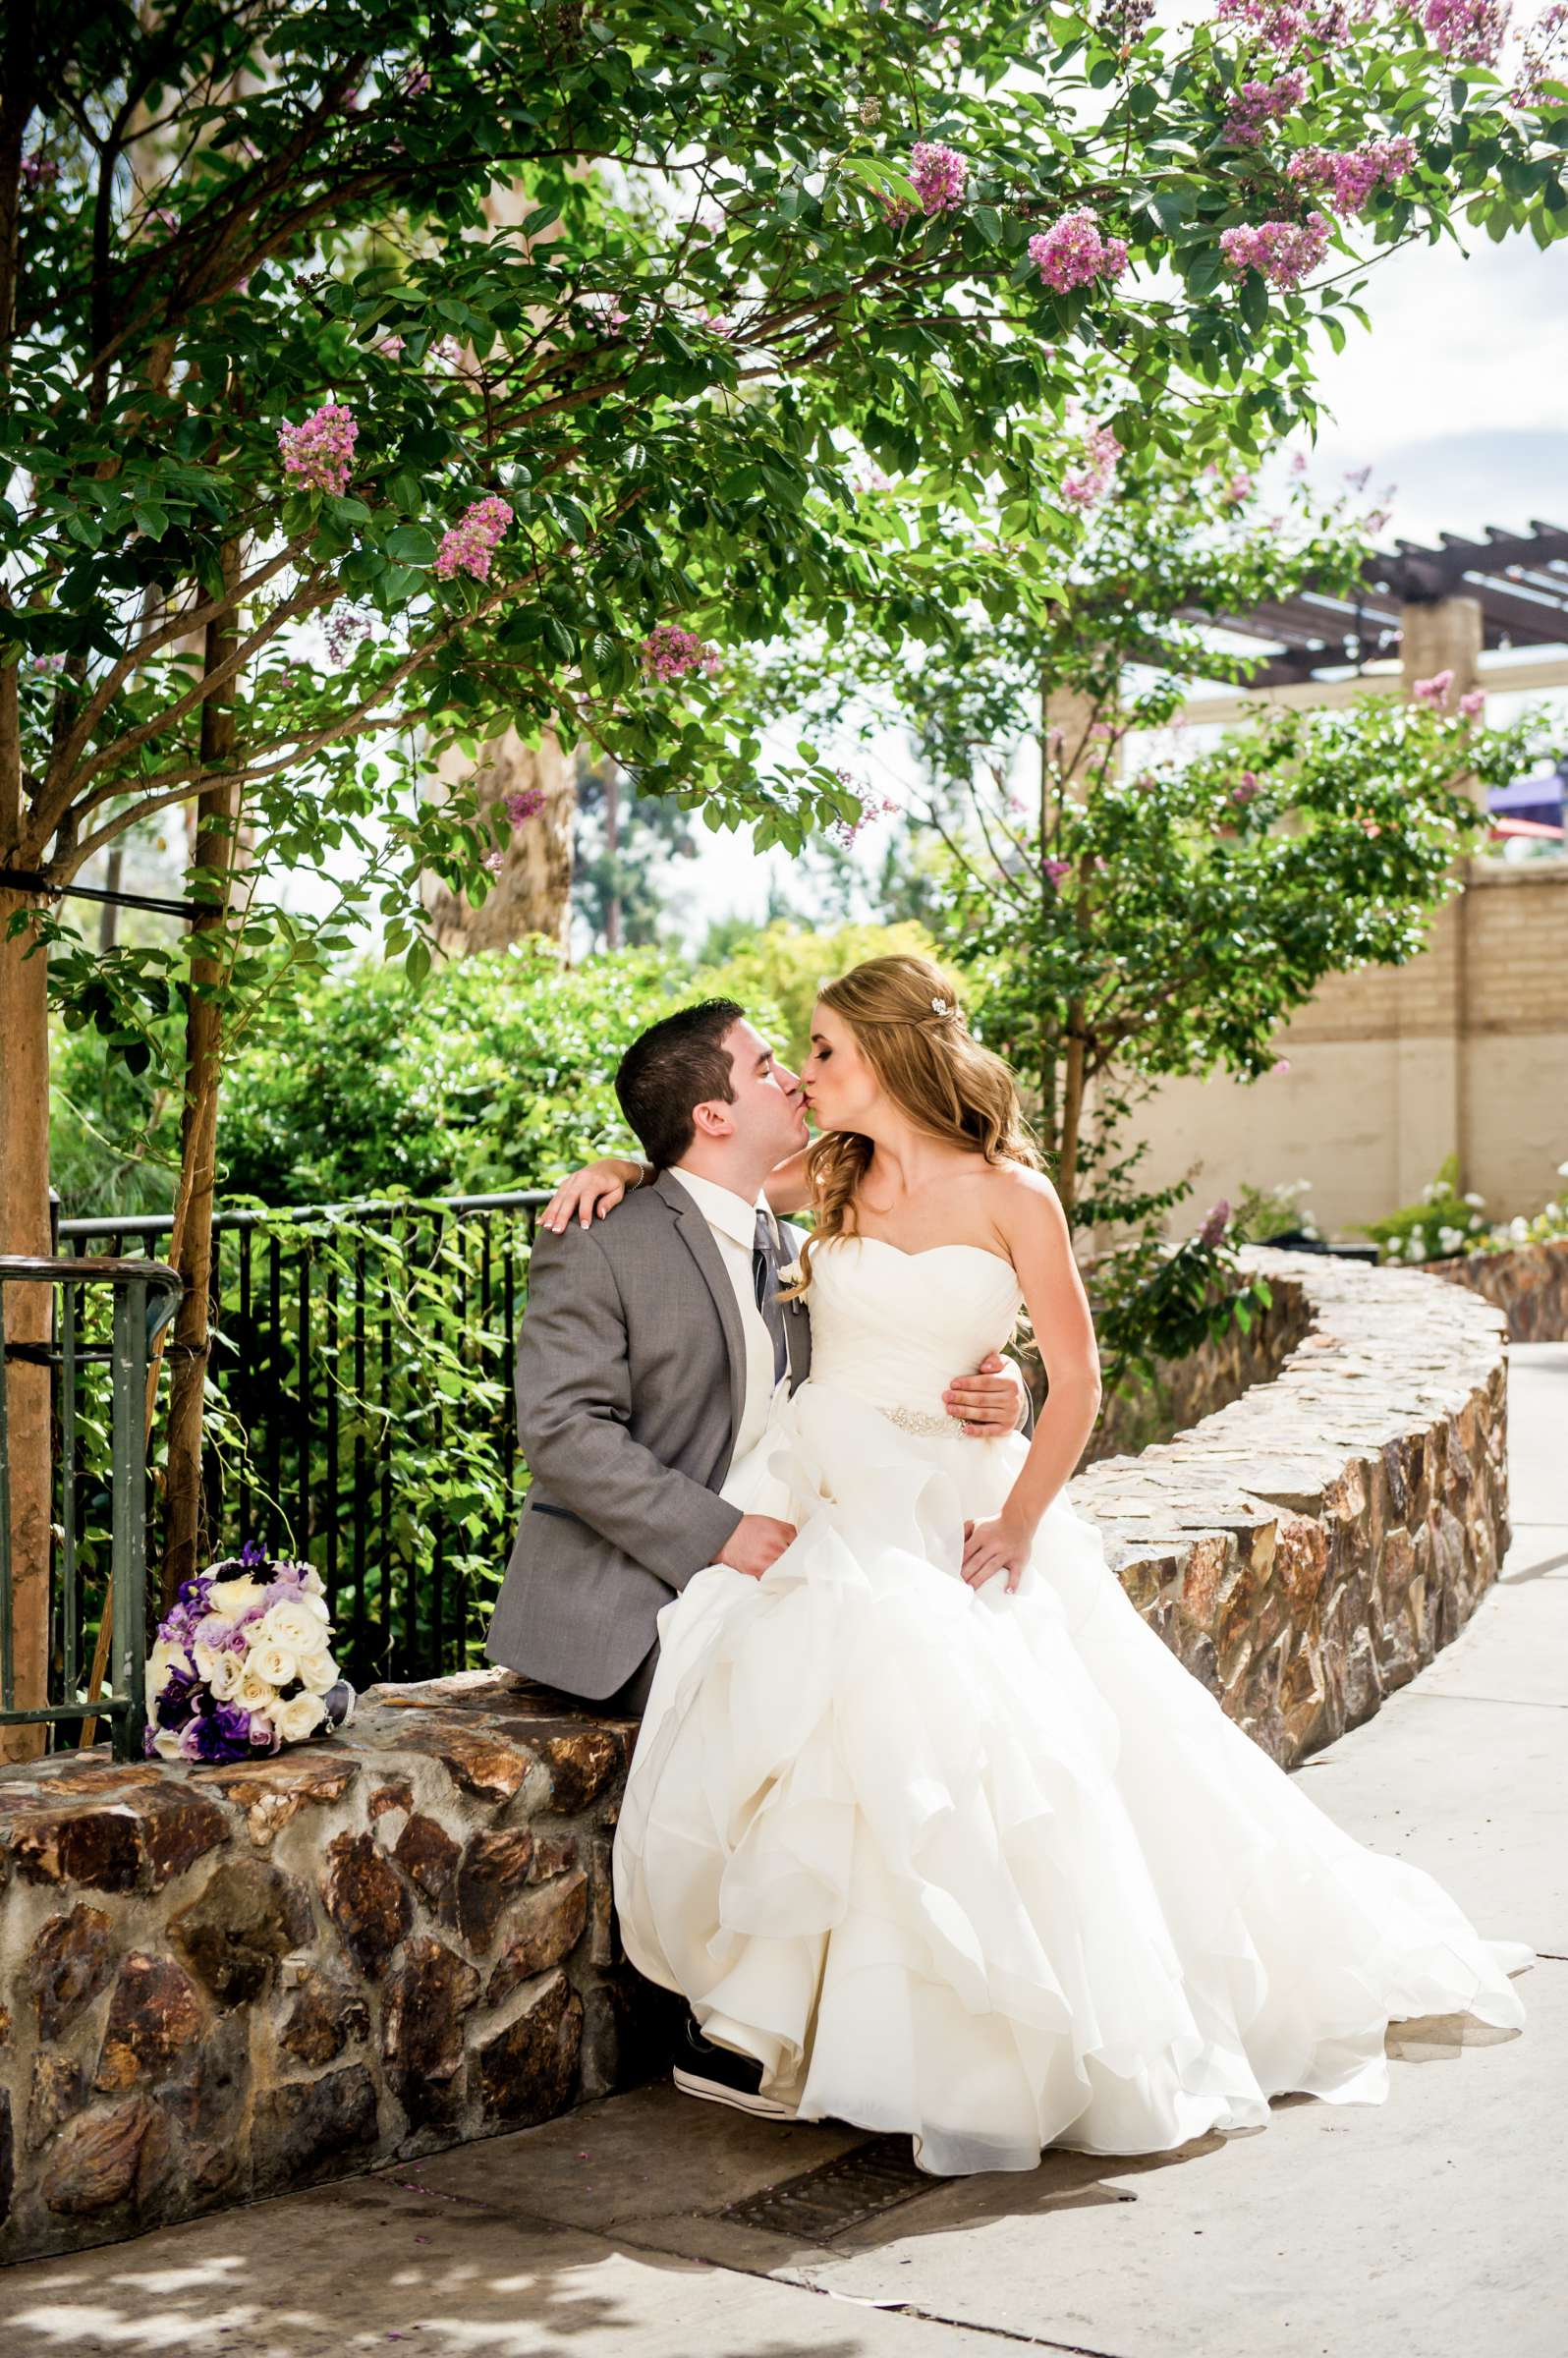 The Prado Wedding coordinated by Victoria Weddings & Events, Melissa and Andrew Wedding Photo #104 by True Photography